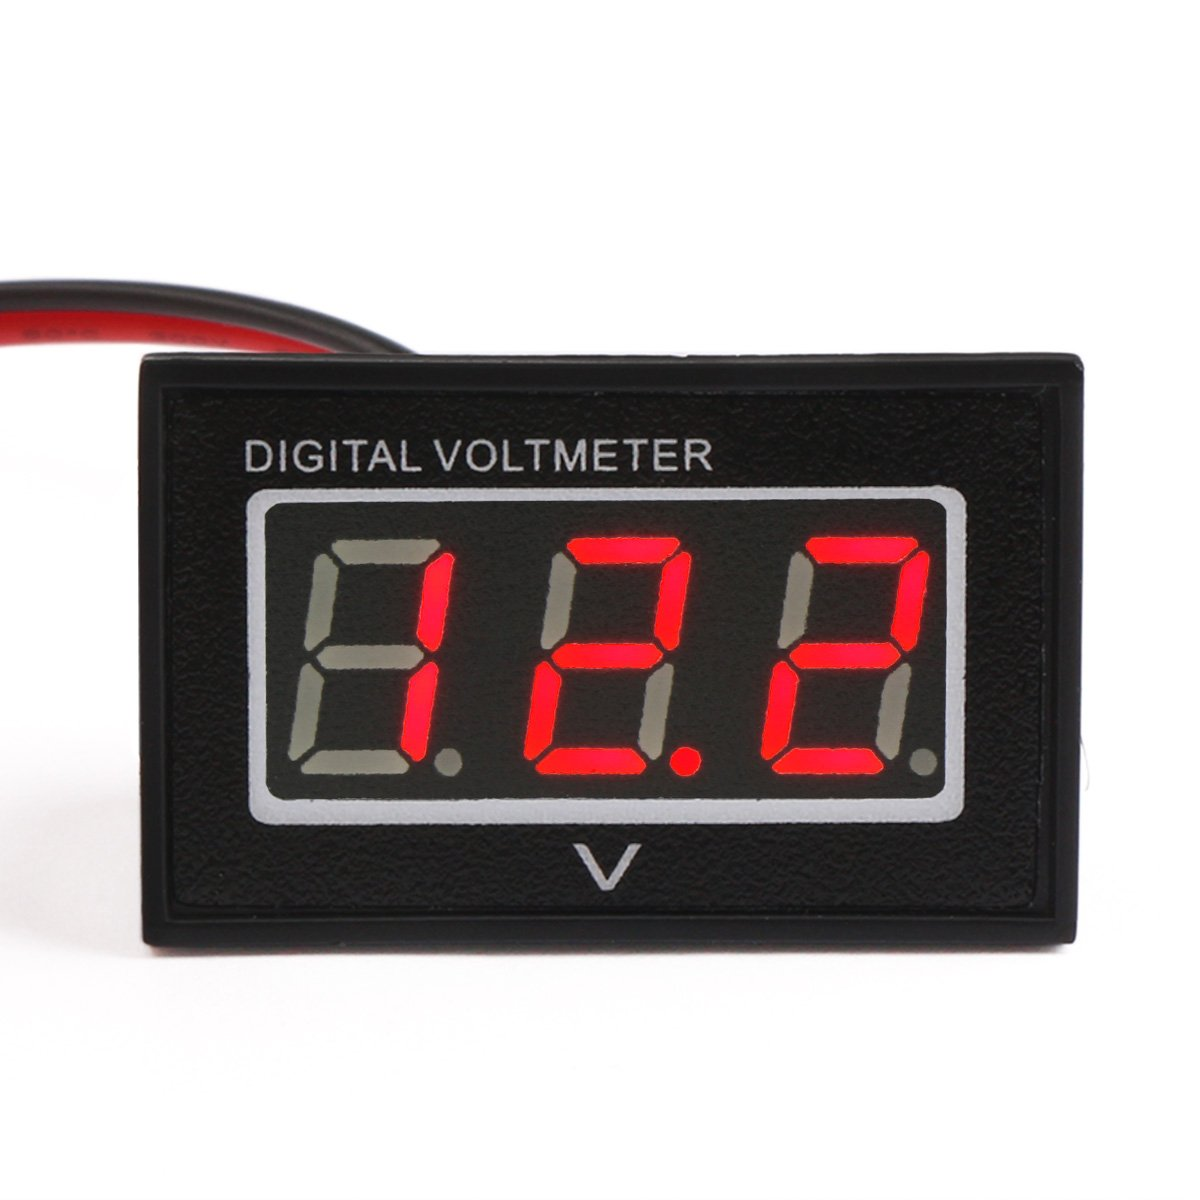 Drok 040 Dc25 30v Led Waterproof Digital Voltmeter 12v 24v Wiring Volt Gauge Voltage Meter Panel Battery Monitor Tester With 2 Wires Tools Home